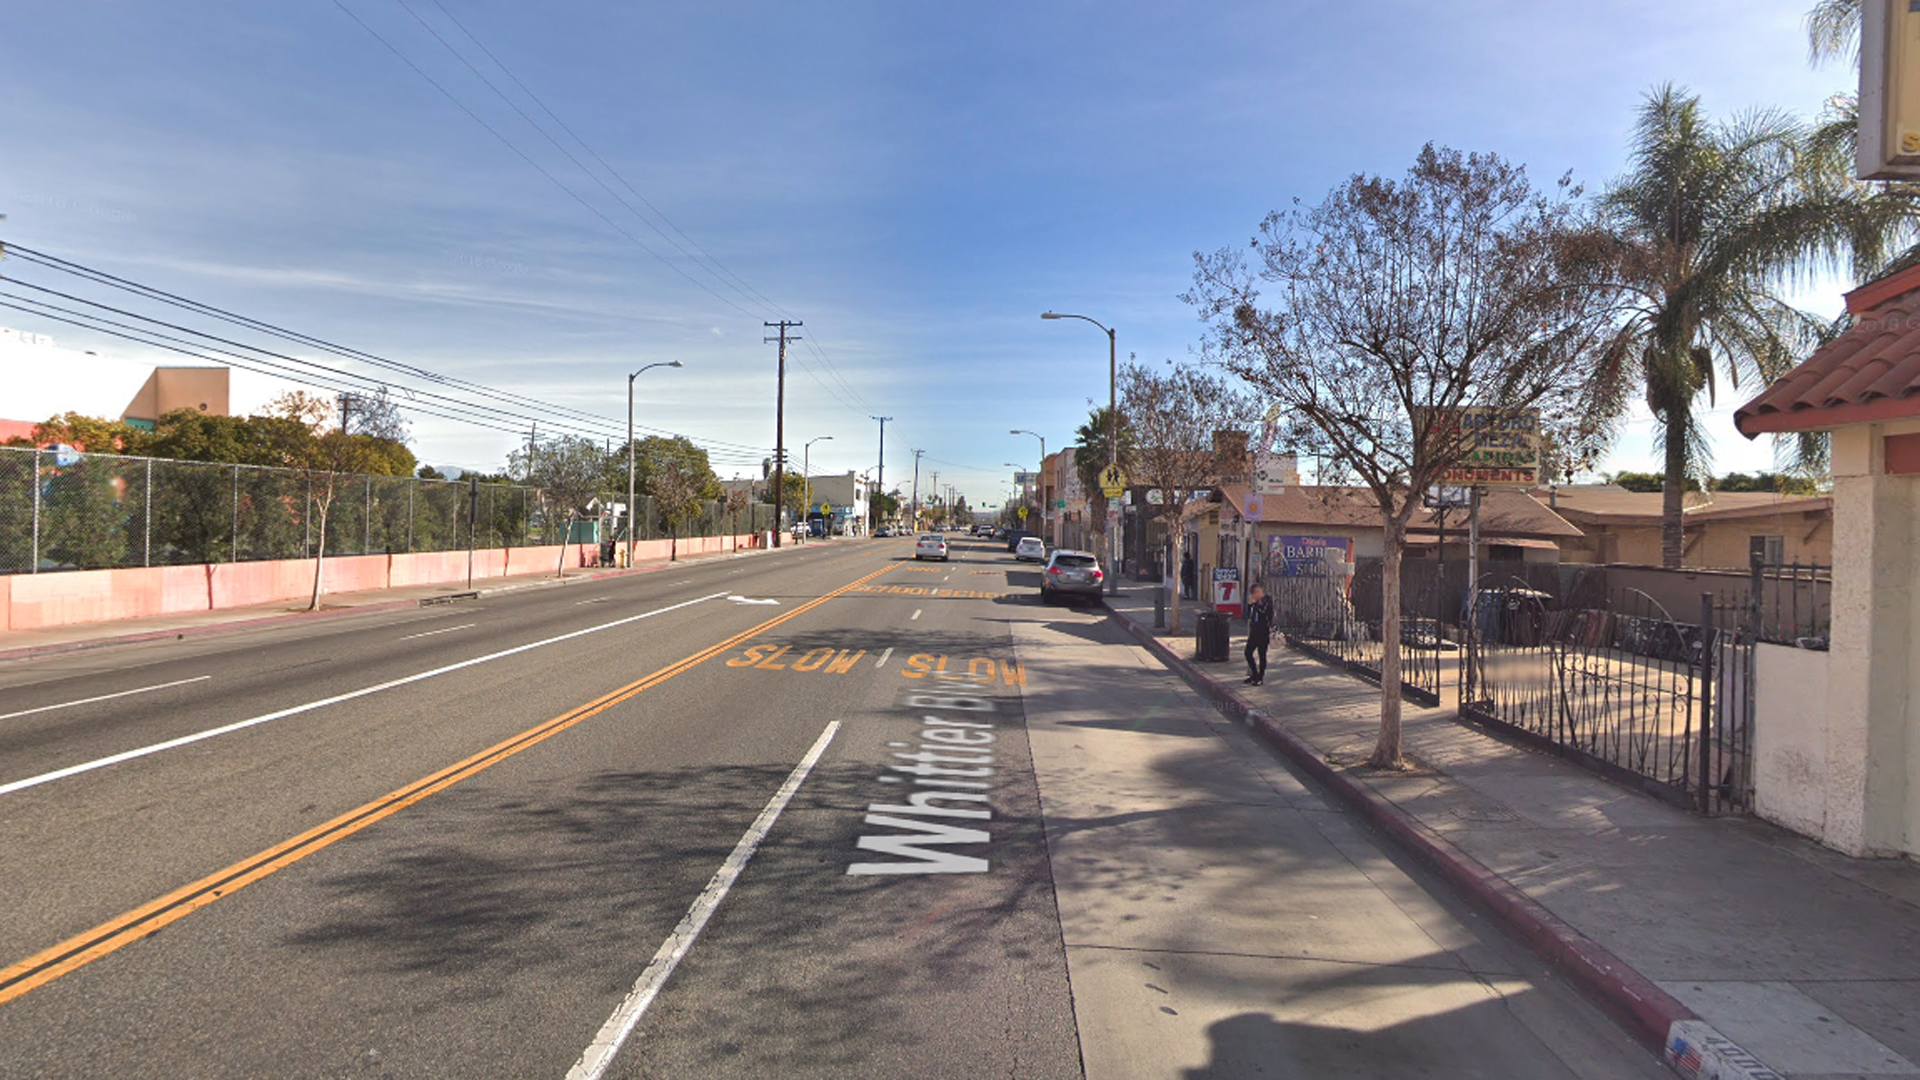 The 4000 block of Whittier Boulevard in East Los Angeles, as pictured in a Google Street View image in January of 2018.